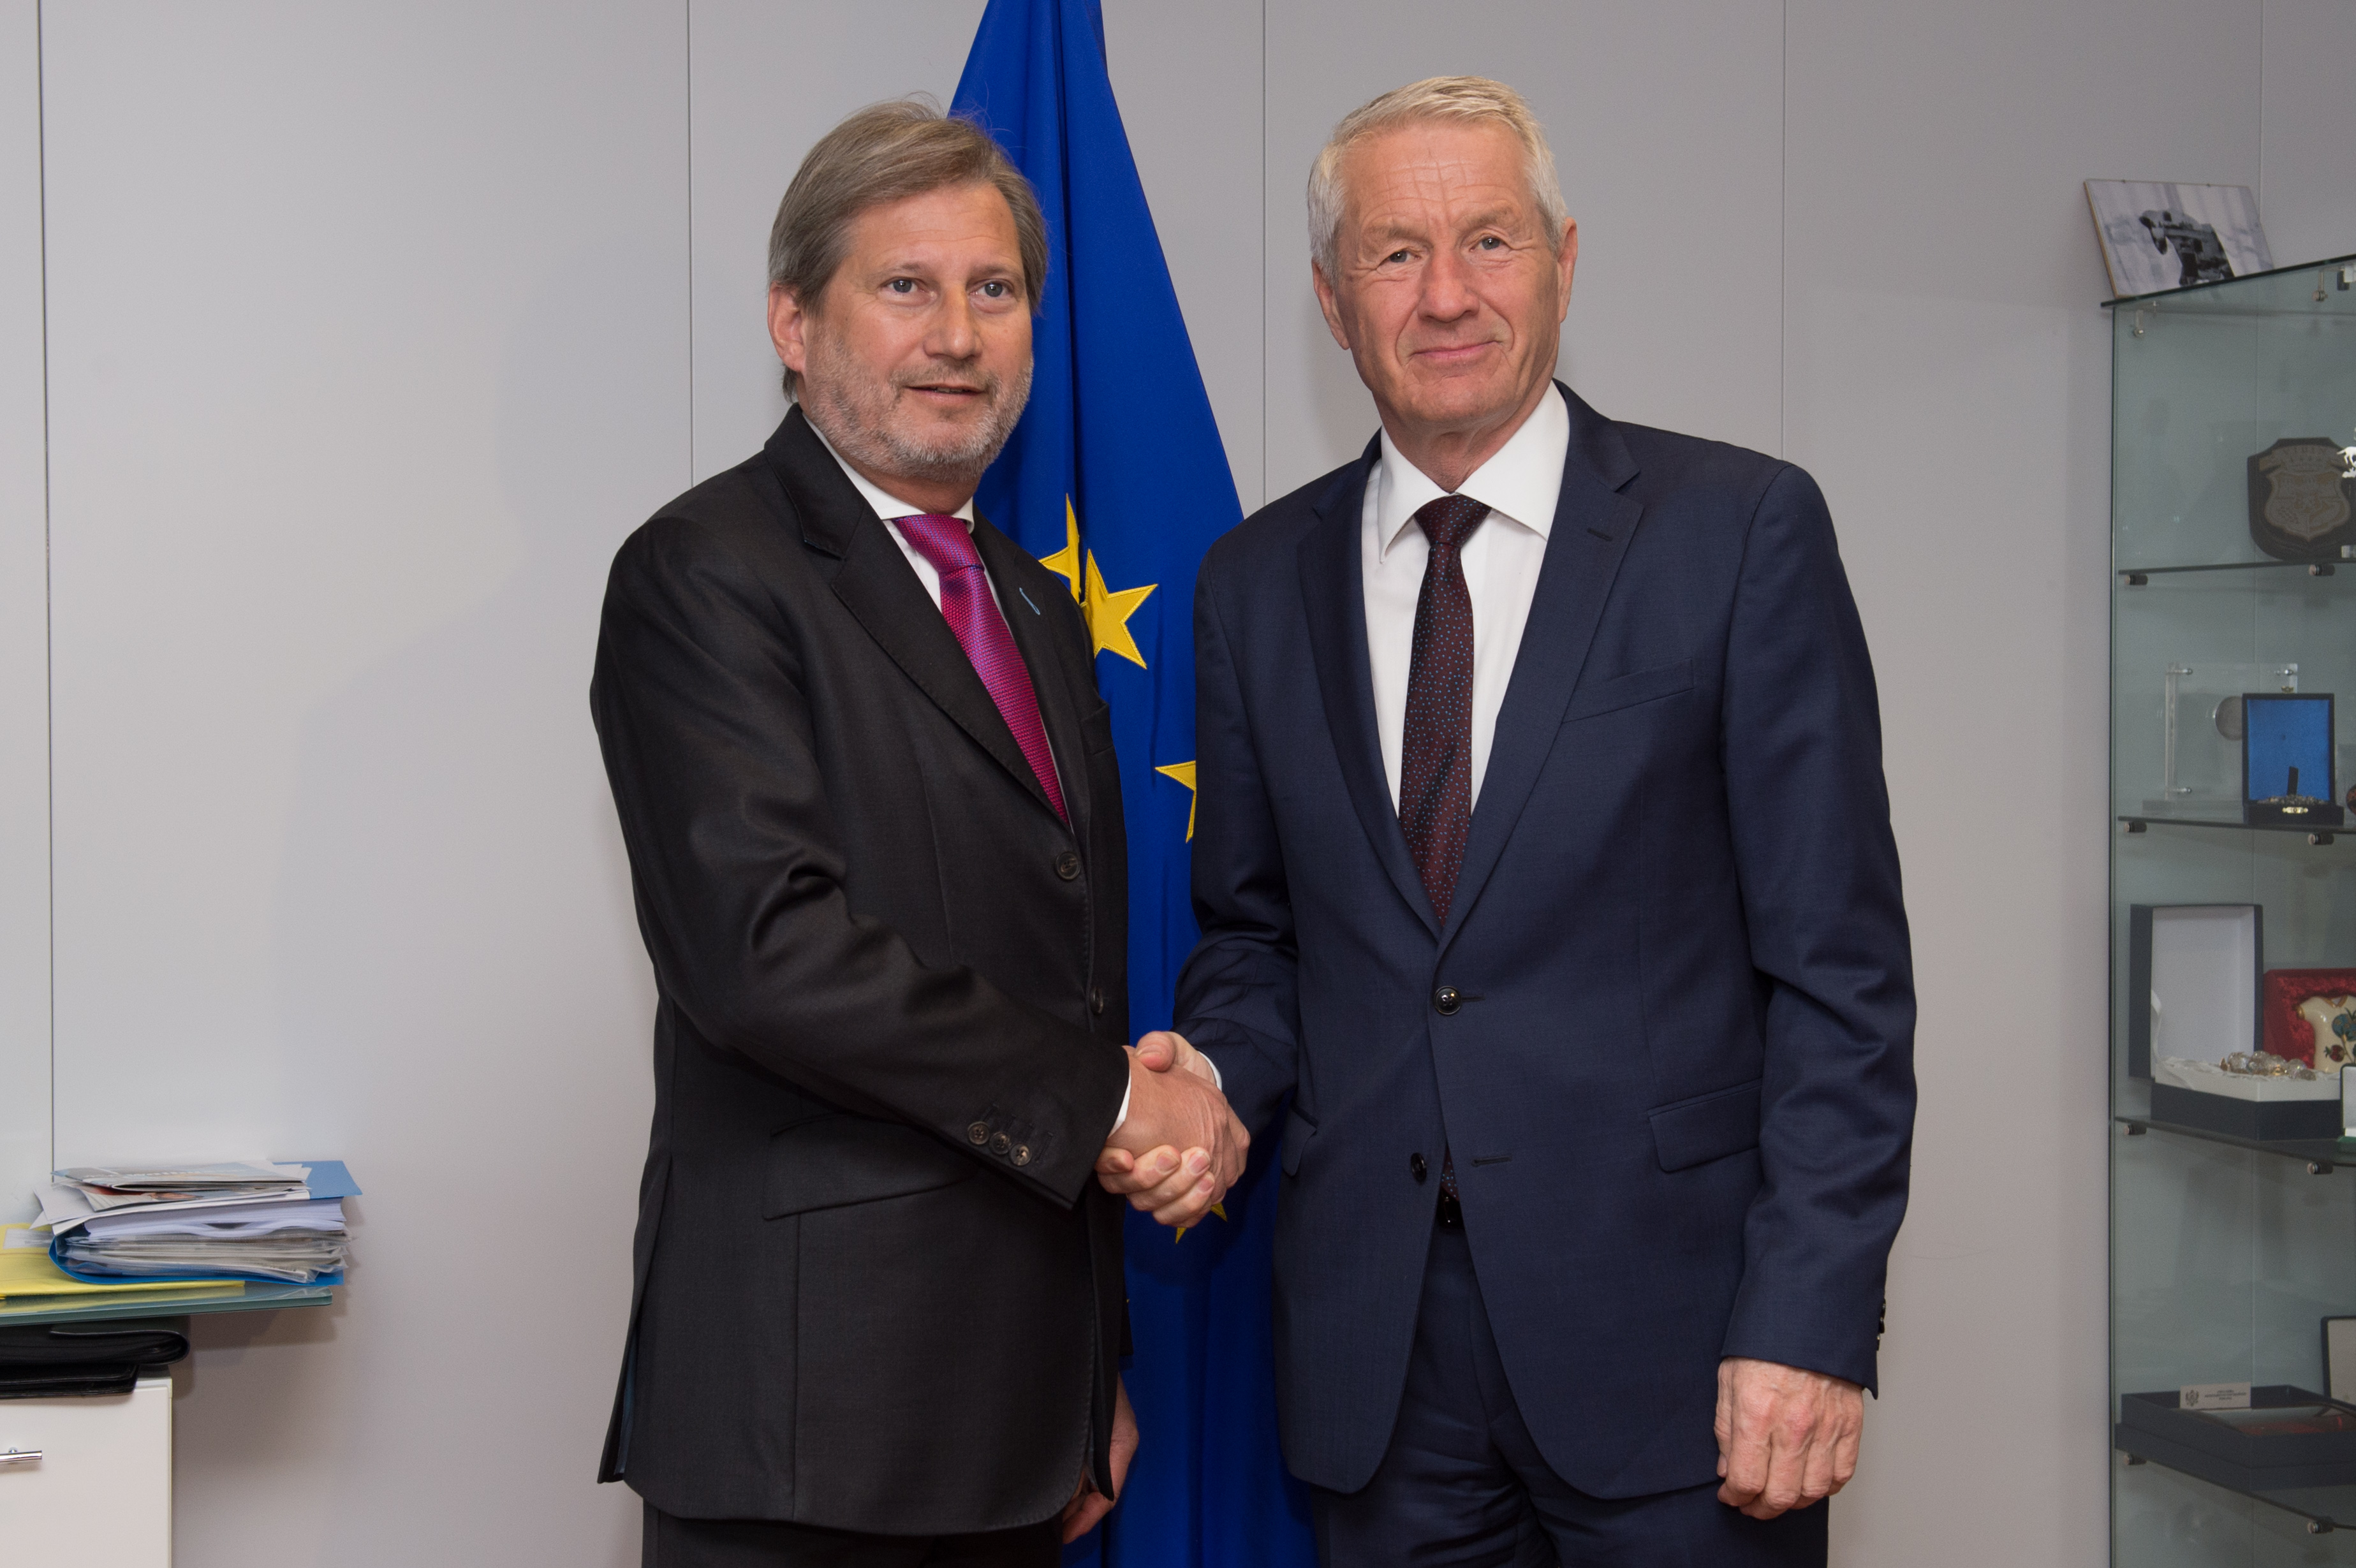 Thorbjorn Jagland, on the right, was received by Johannes Hahn